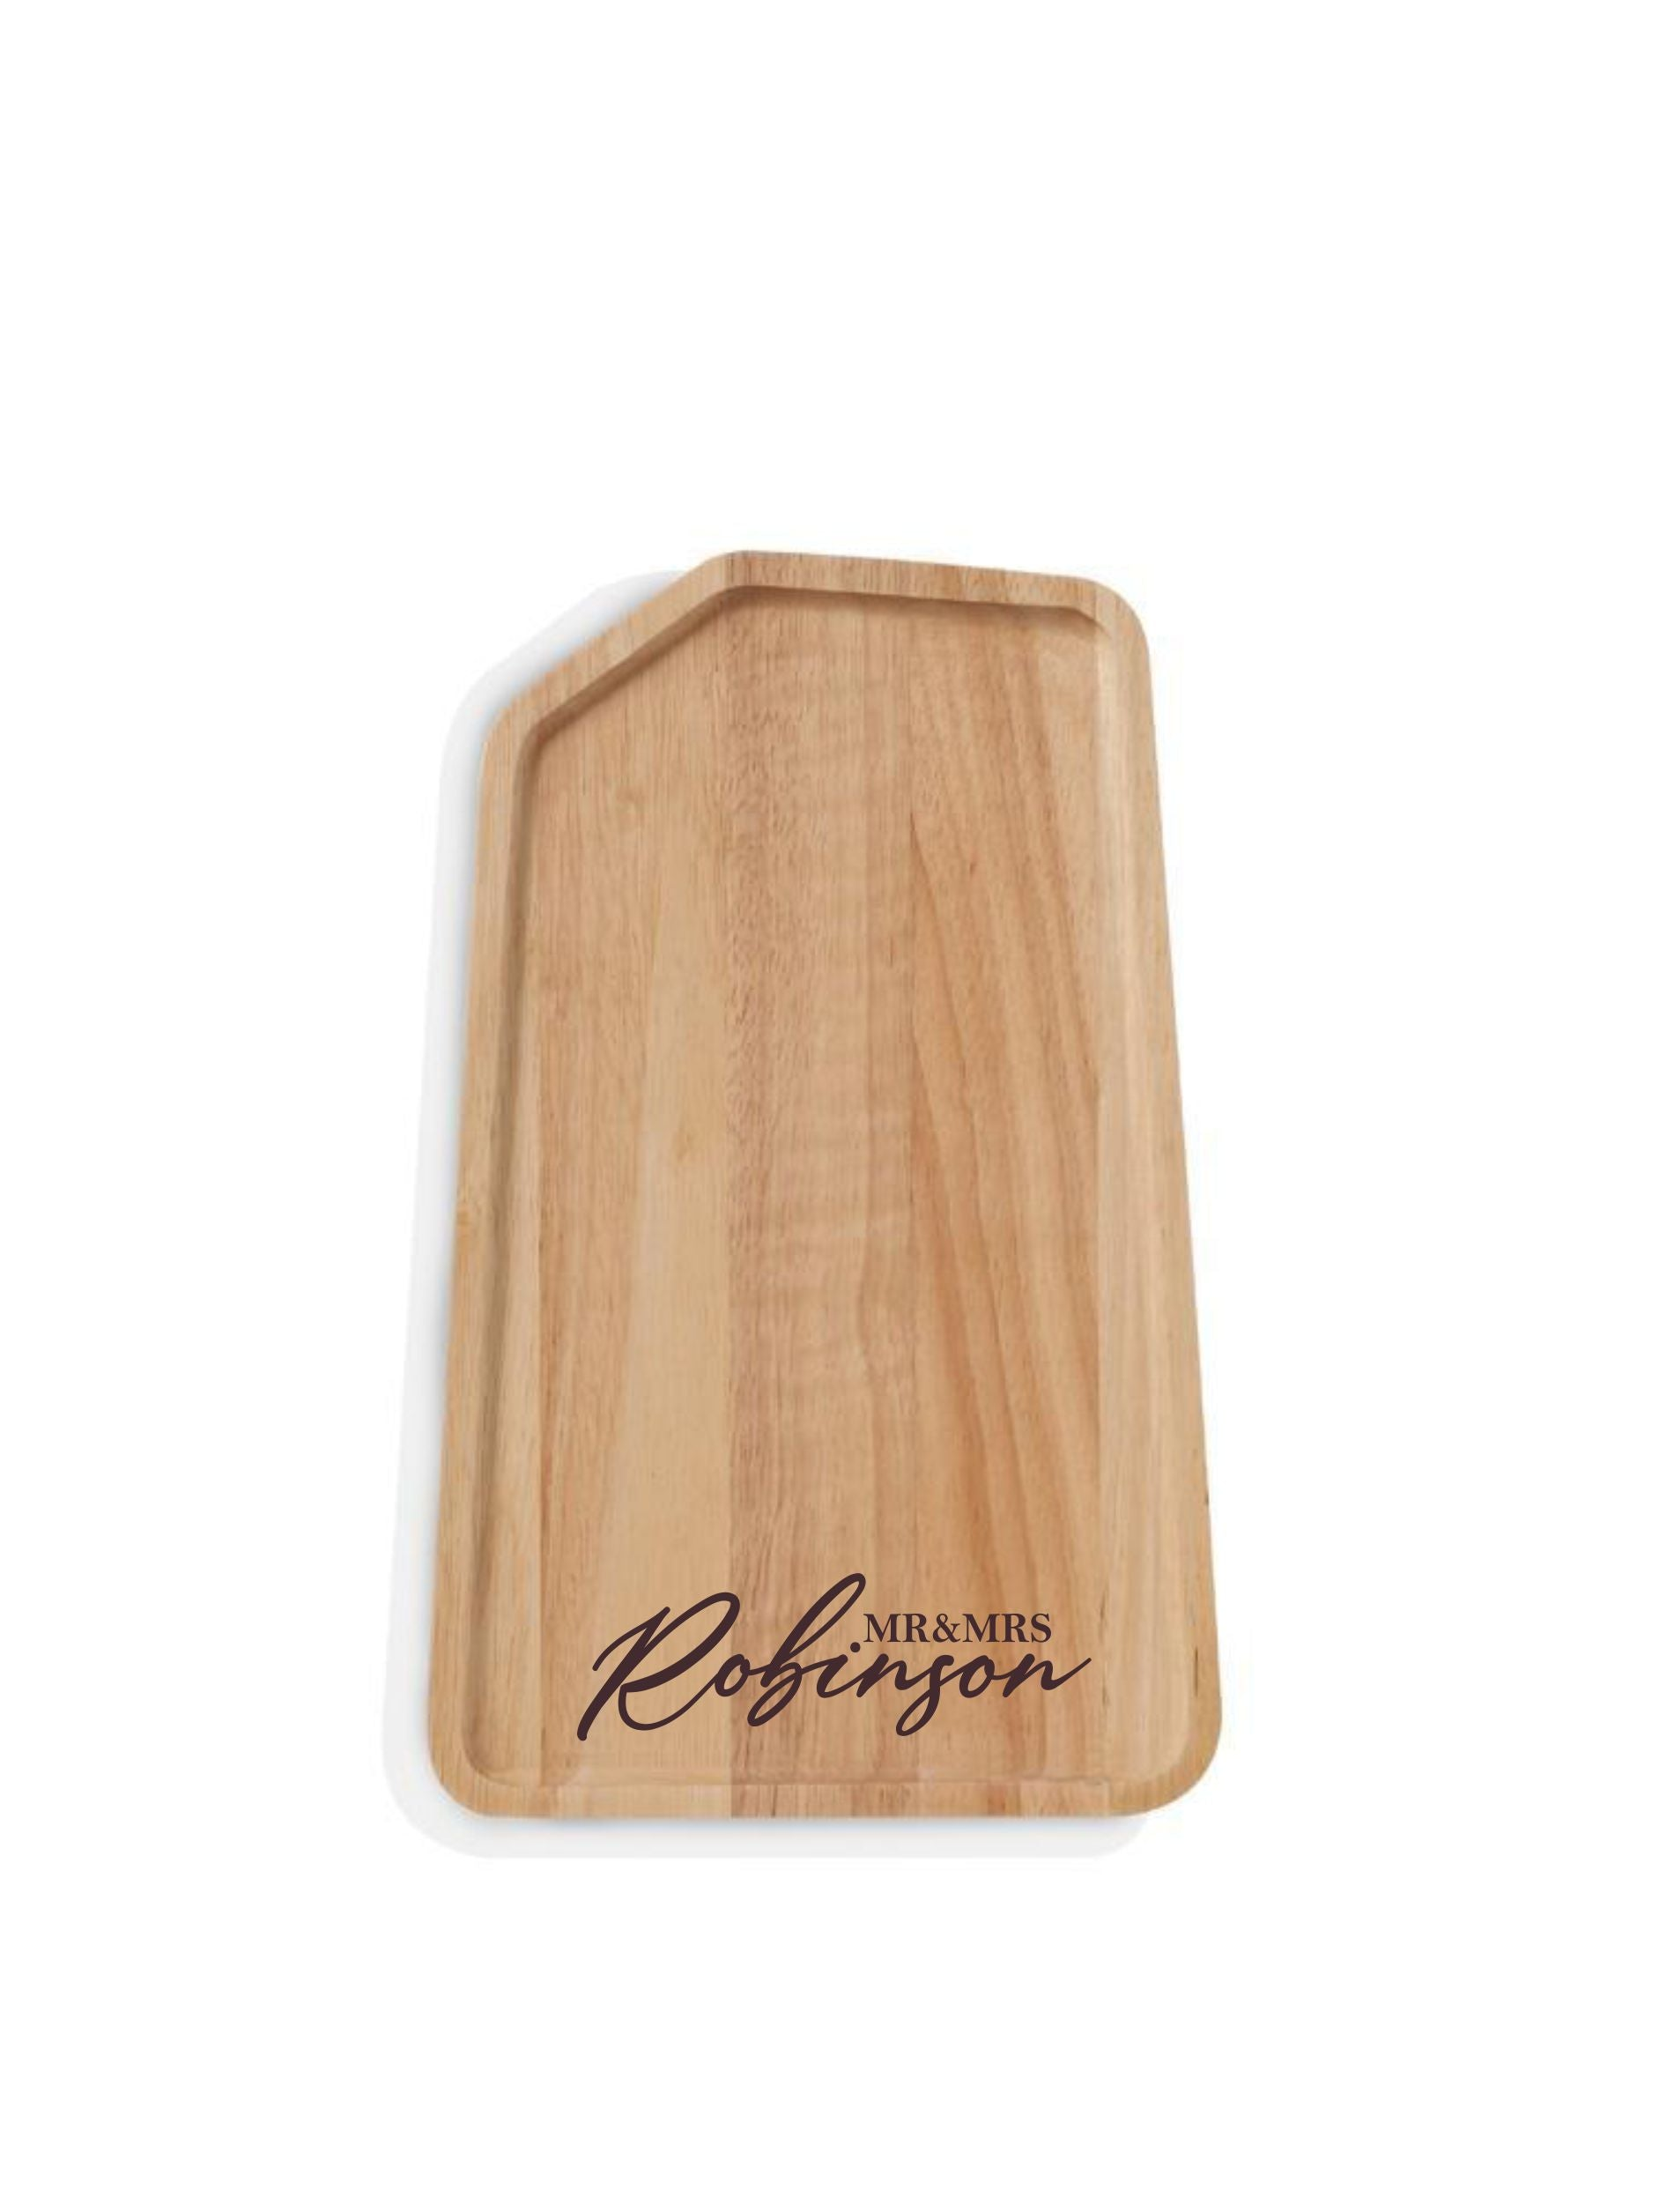 Custom engraved rectangular serving platter S/M/L